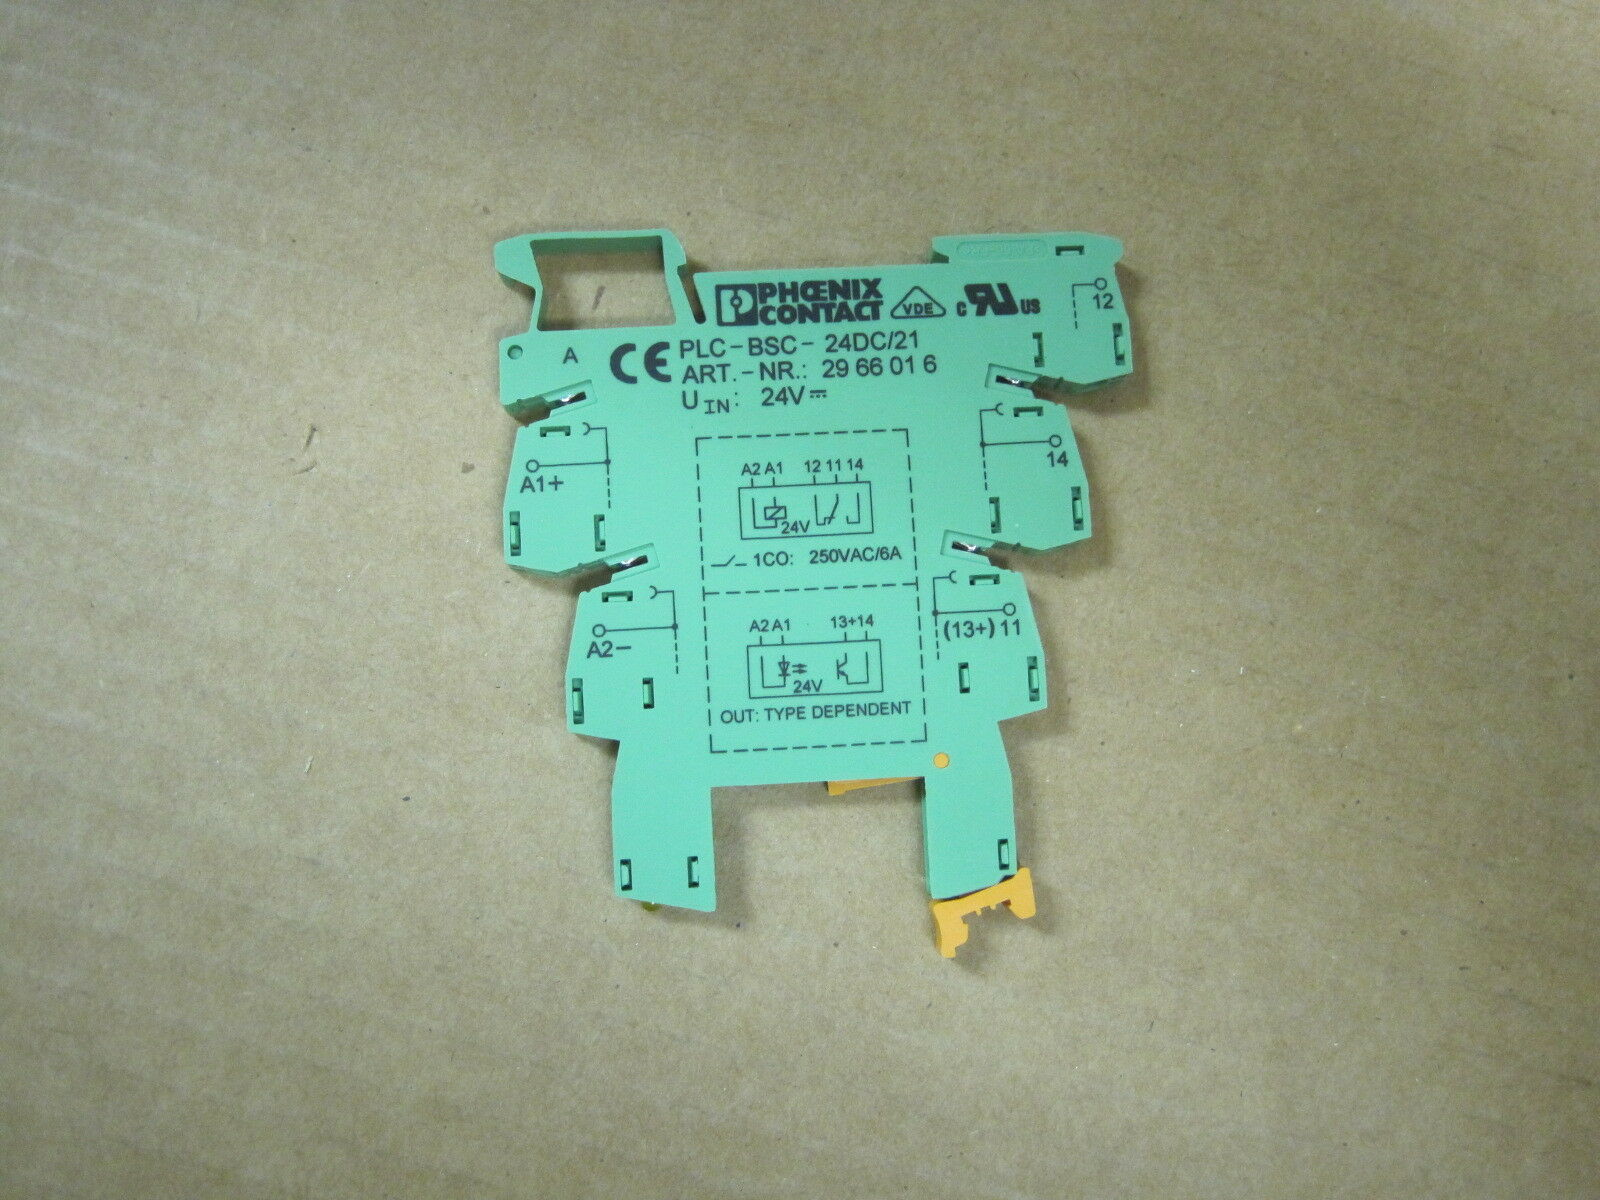 Phoenix Contact Plc Bsc 24dc 21 Varioface Relay Socket Terminal Block 1 Of 1only 4 Available See More